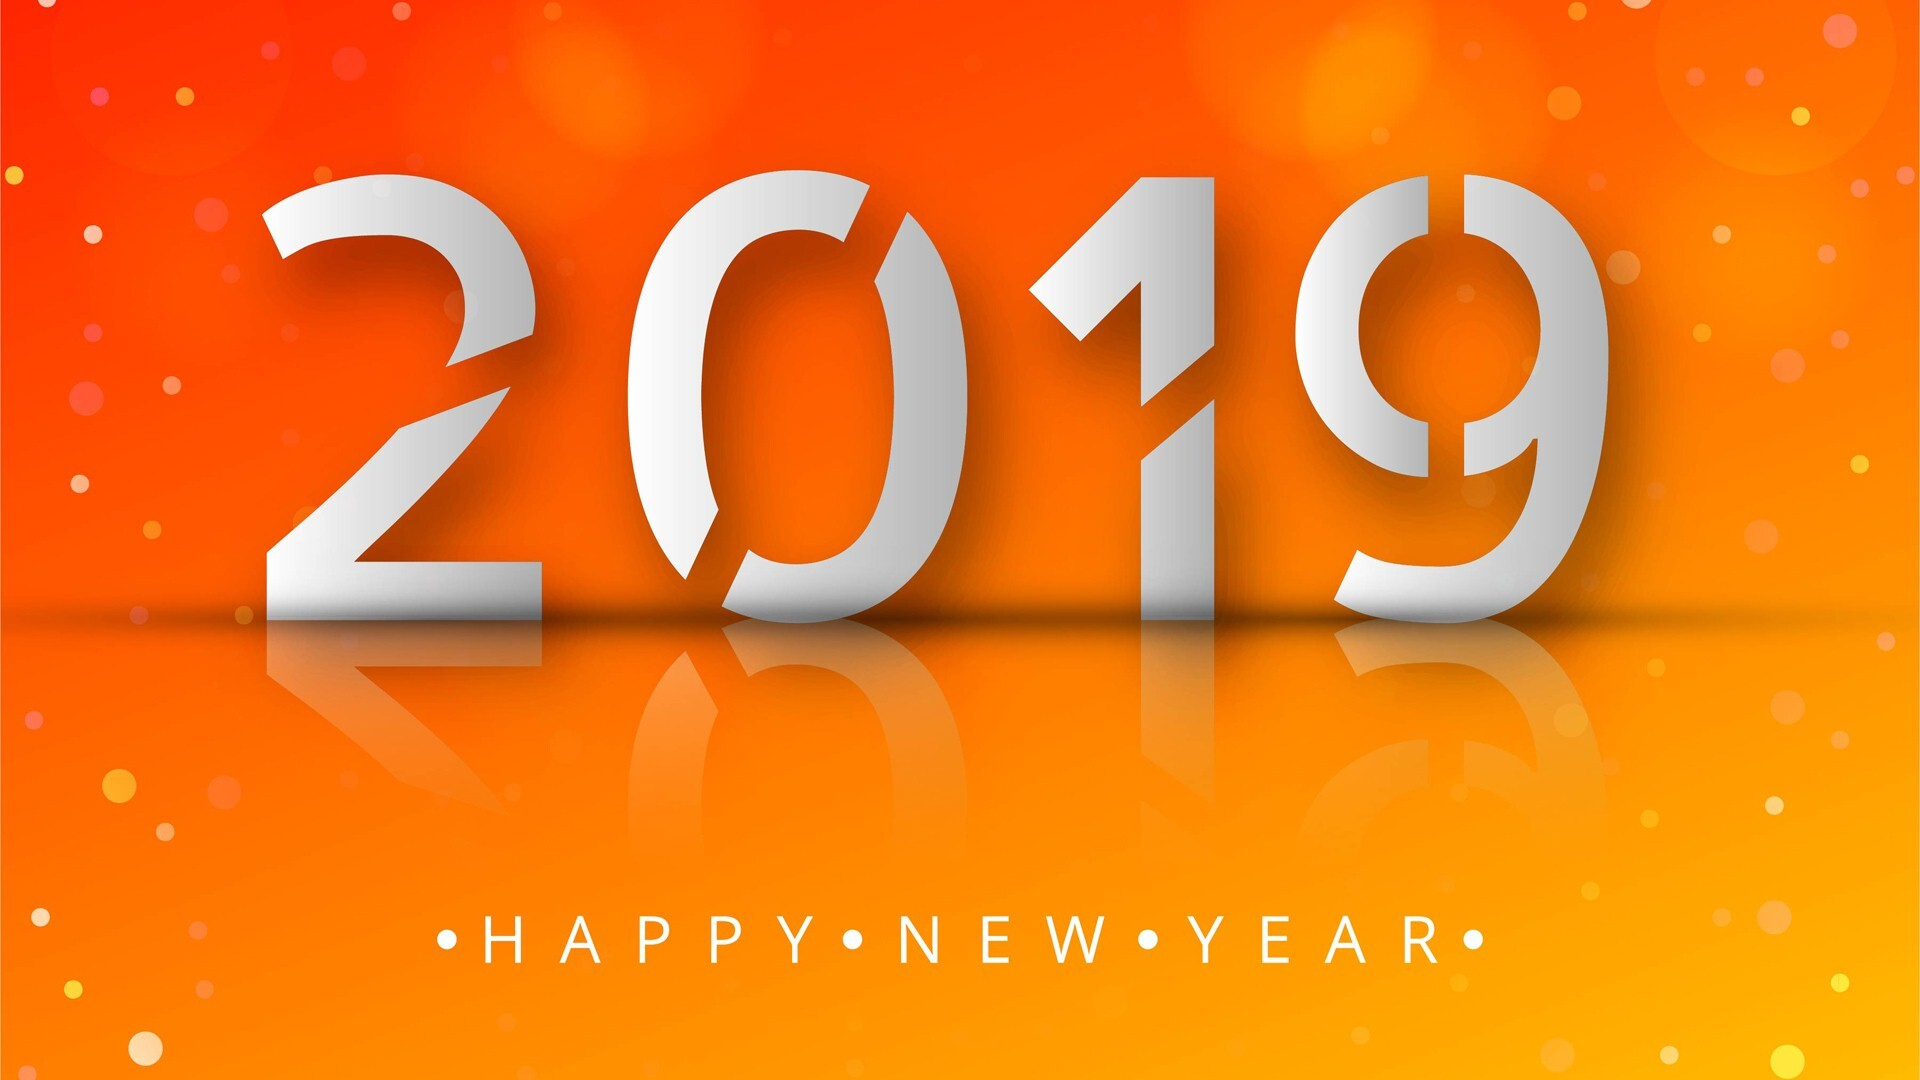 Hd Pics Of 2019 Happy New Year Hd Wallpapers